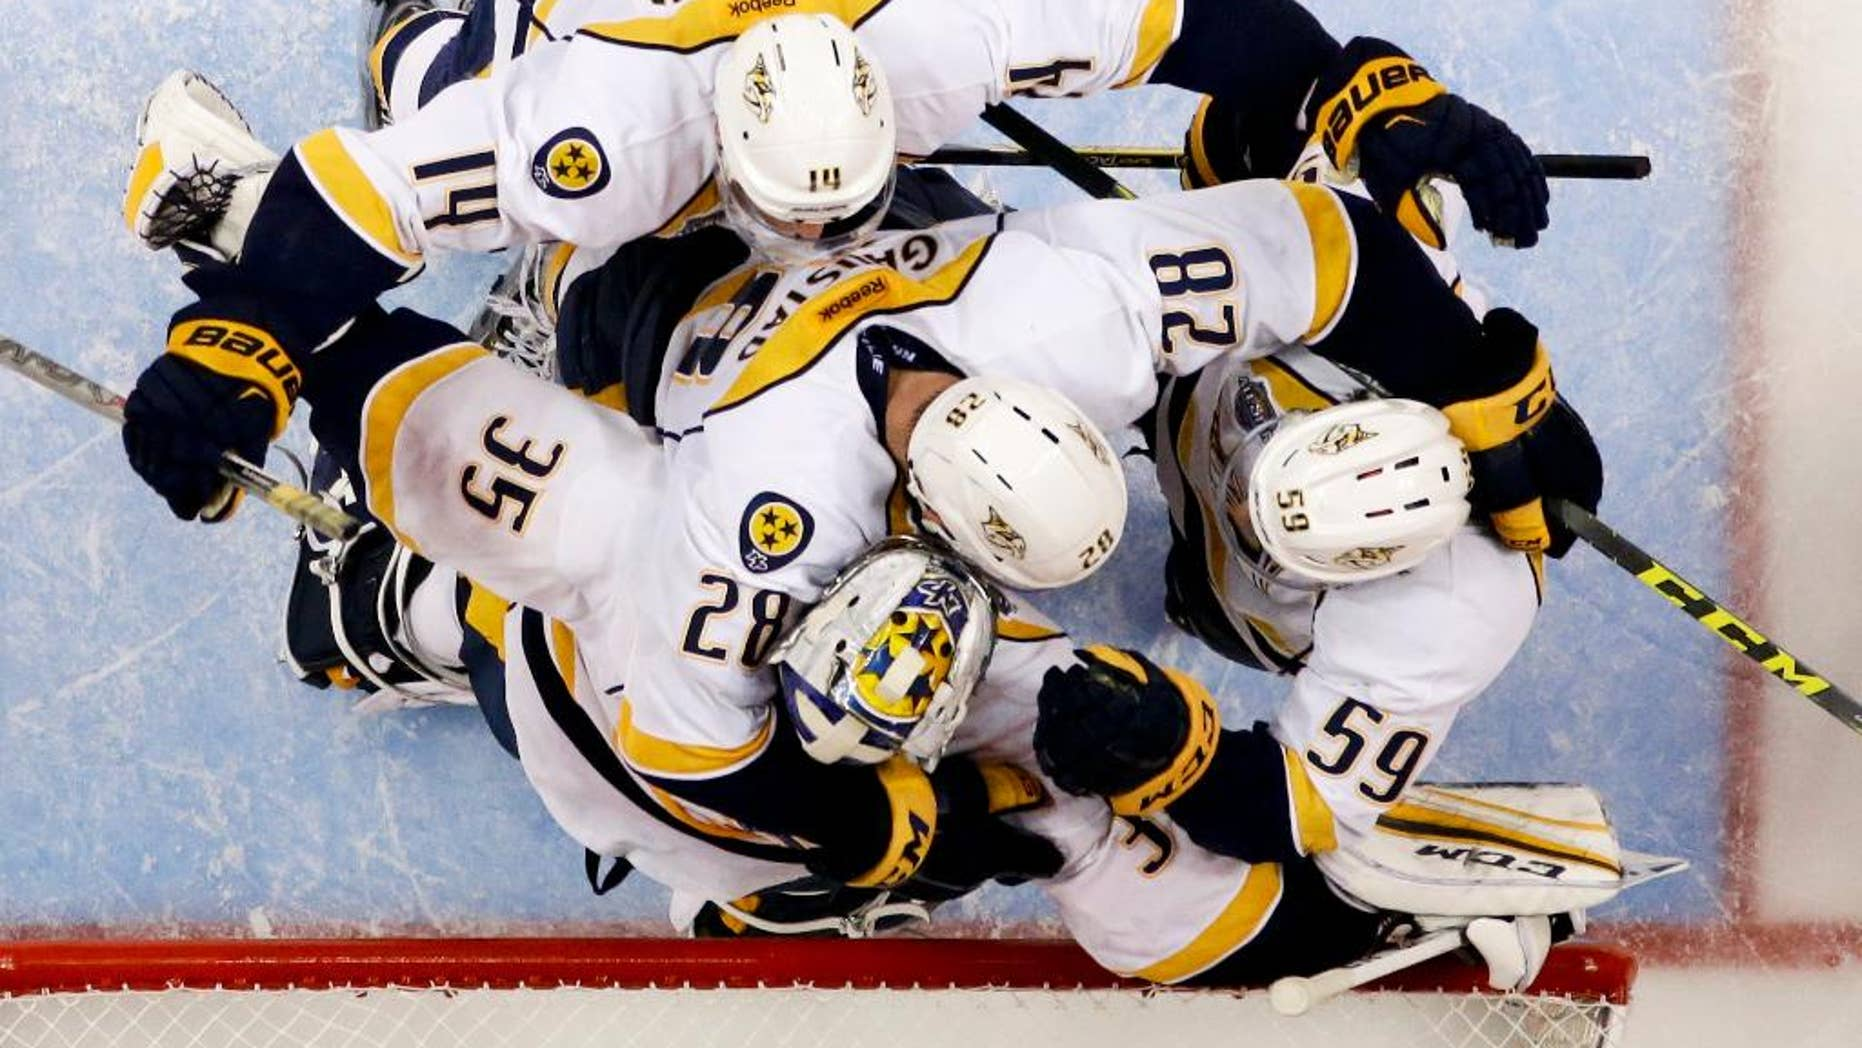 Nashville Predators celebrates a 2-1 win over the Anaheim Ducks during Game 7 in an NHL hockey Stanley Cup playoffs first-round series in Anaheim, Calif., Wednesday, April 27, 2016. (AP Photo/Chris Carlson)